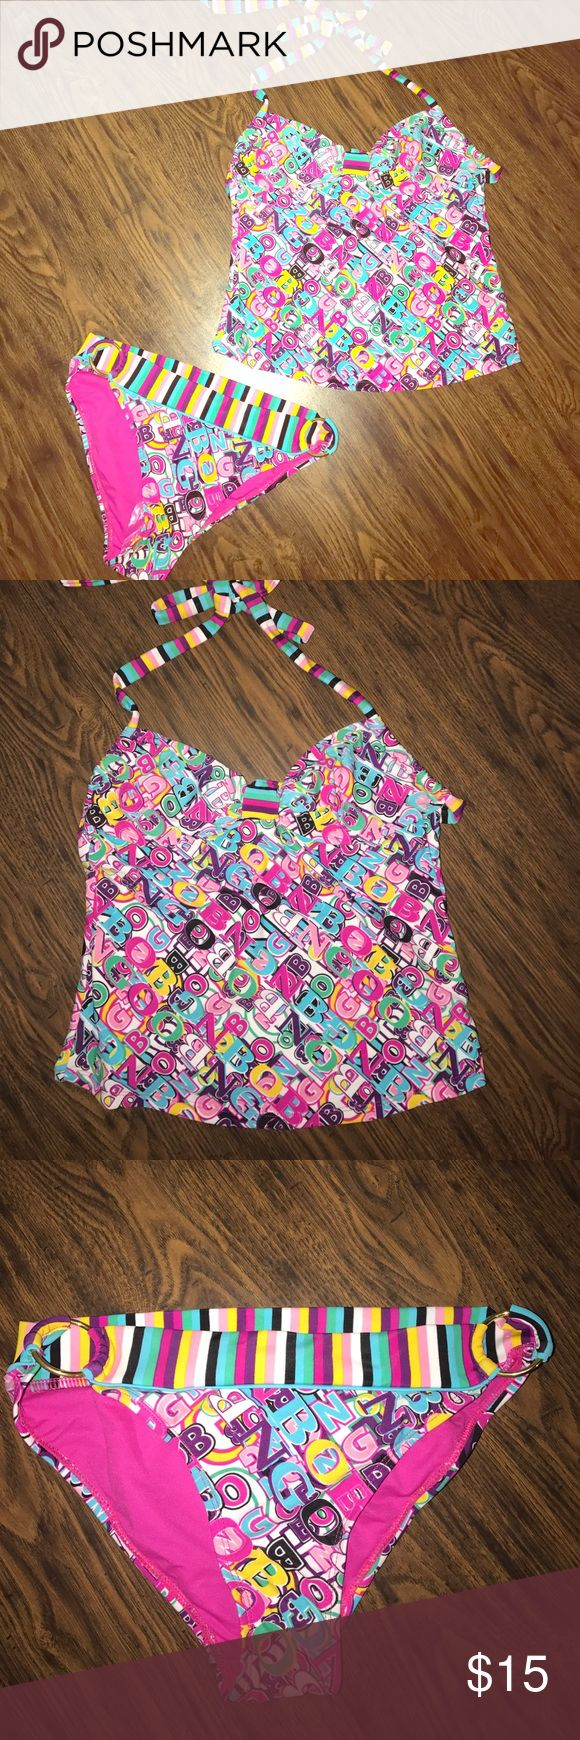 Bingo Tankini 2 Pc Halter style swim suit. Hot pink, blue, green, purple, pink and yellow and white. Letters and stripes prints. So cute. Brand new with tags. BONGO Swim Bikinis